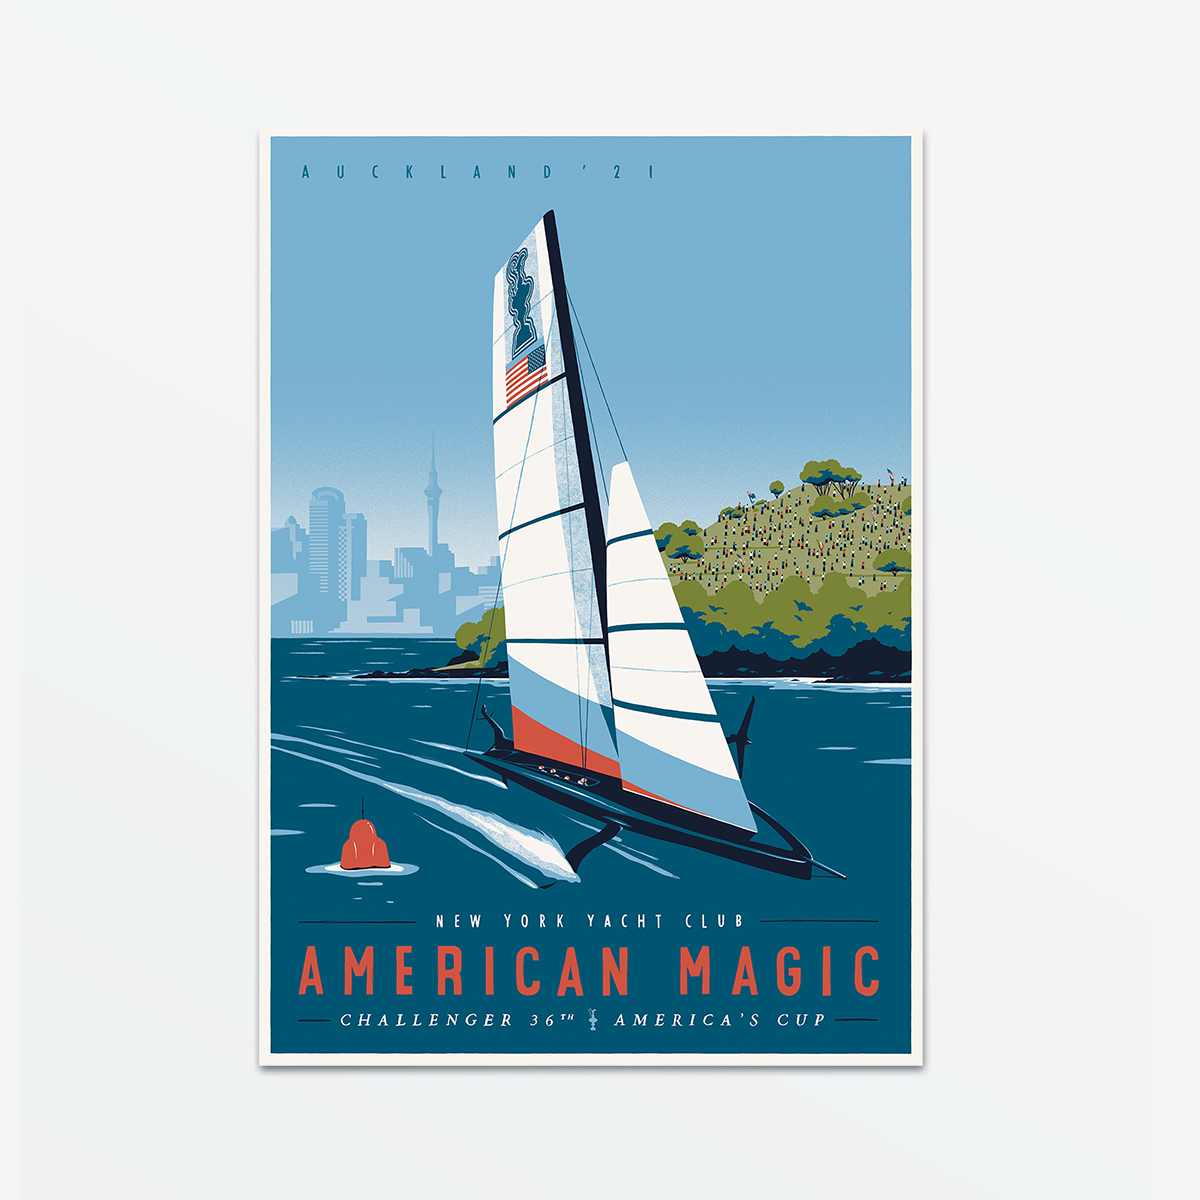 American Magic Poster - Auckland '21